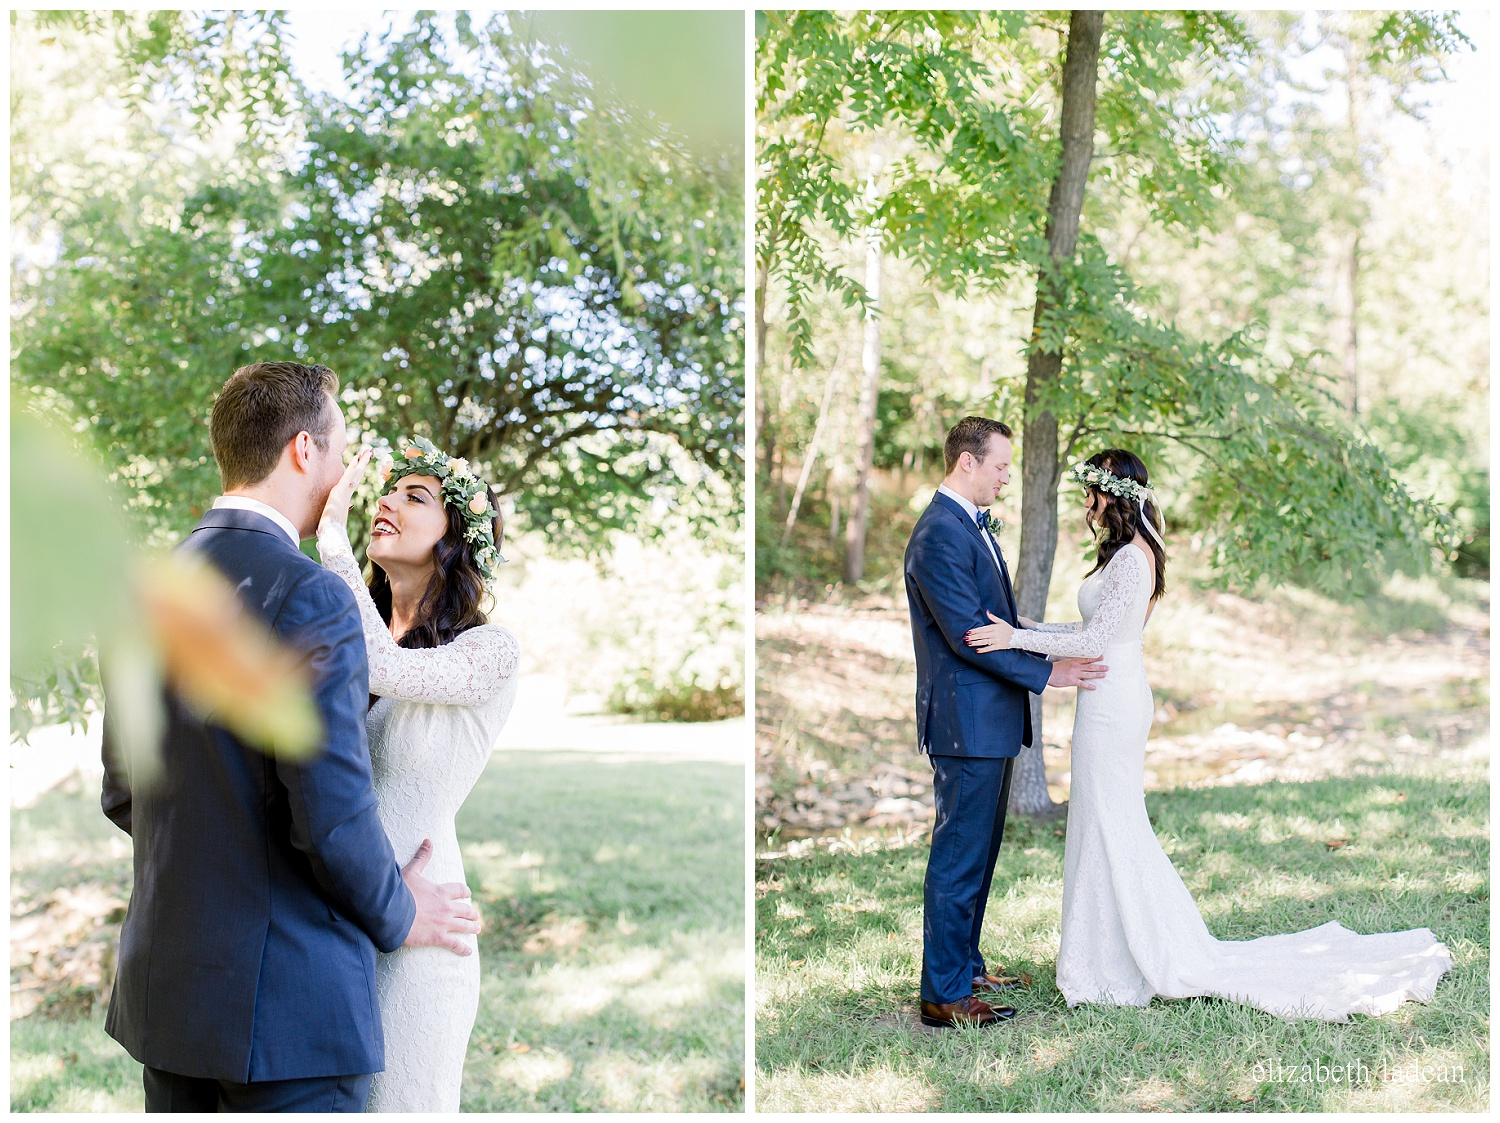 Willow-Creek-Blush-and-Blues-Outdoor-Wedding-Photography-S+Z2018-elizabeth-ladean-photography-photo_0527.jpg